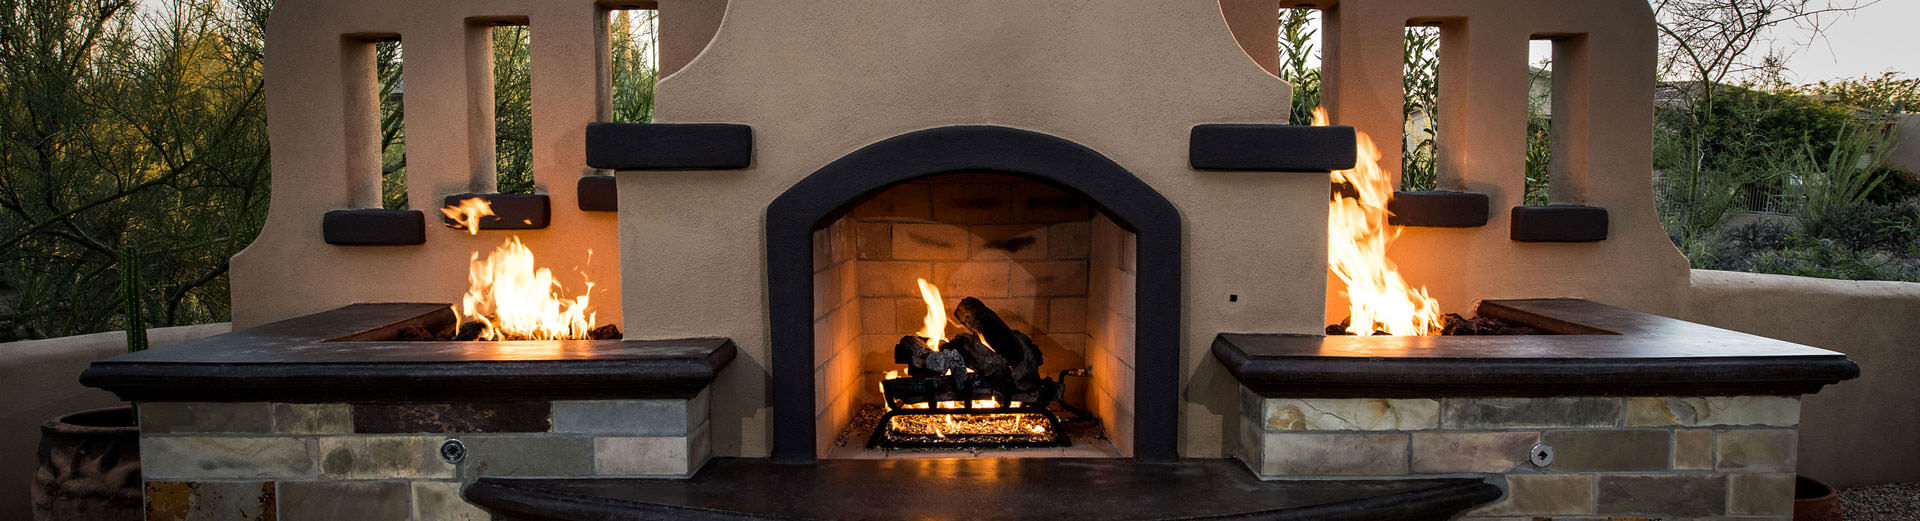 Fireplace Concept to Completion